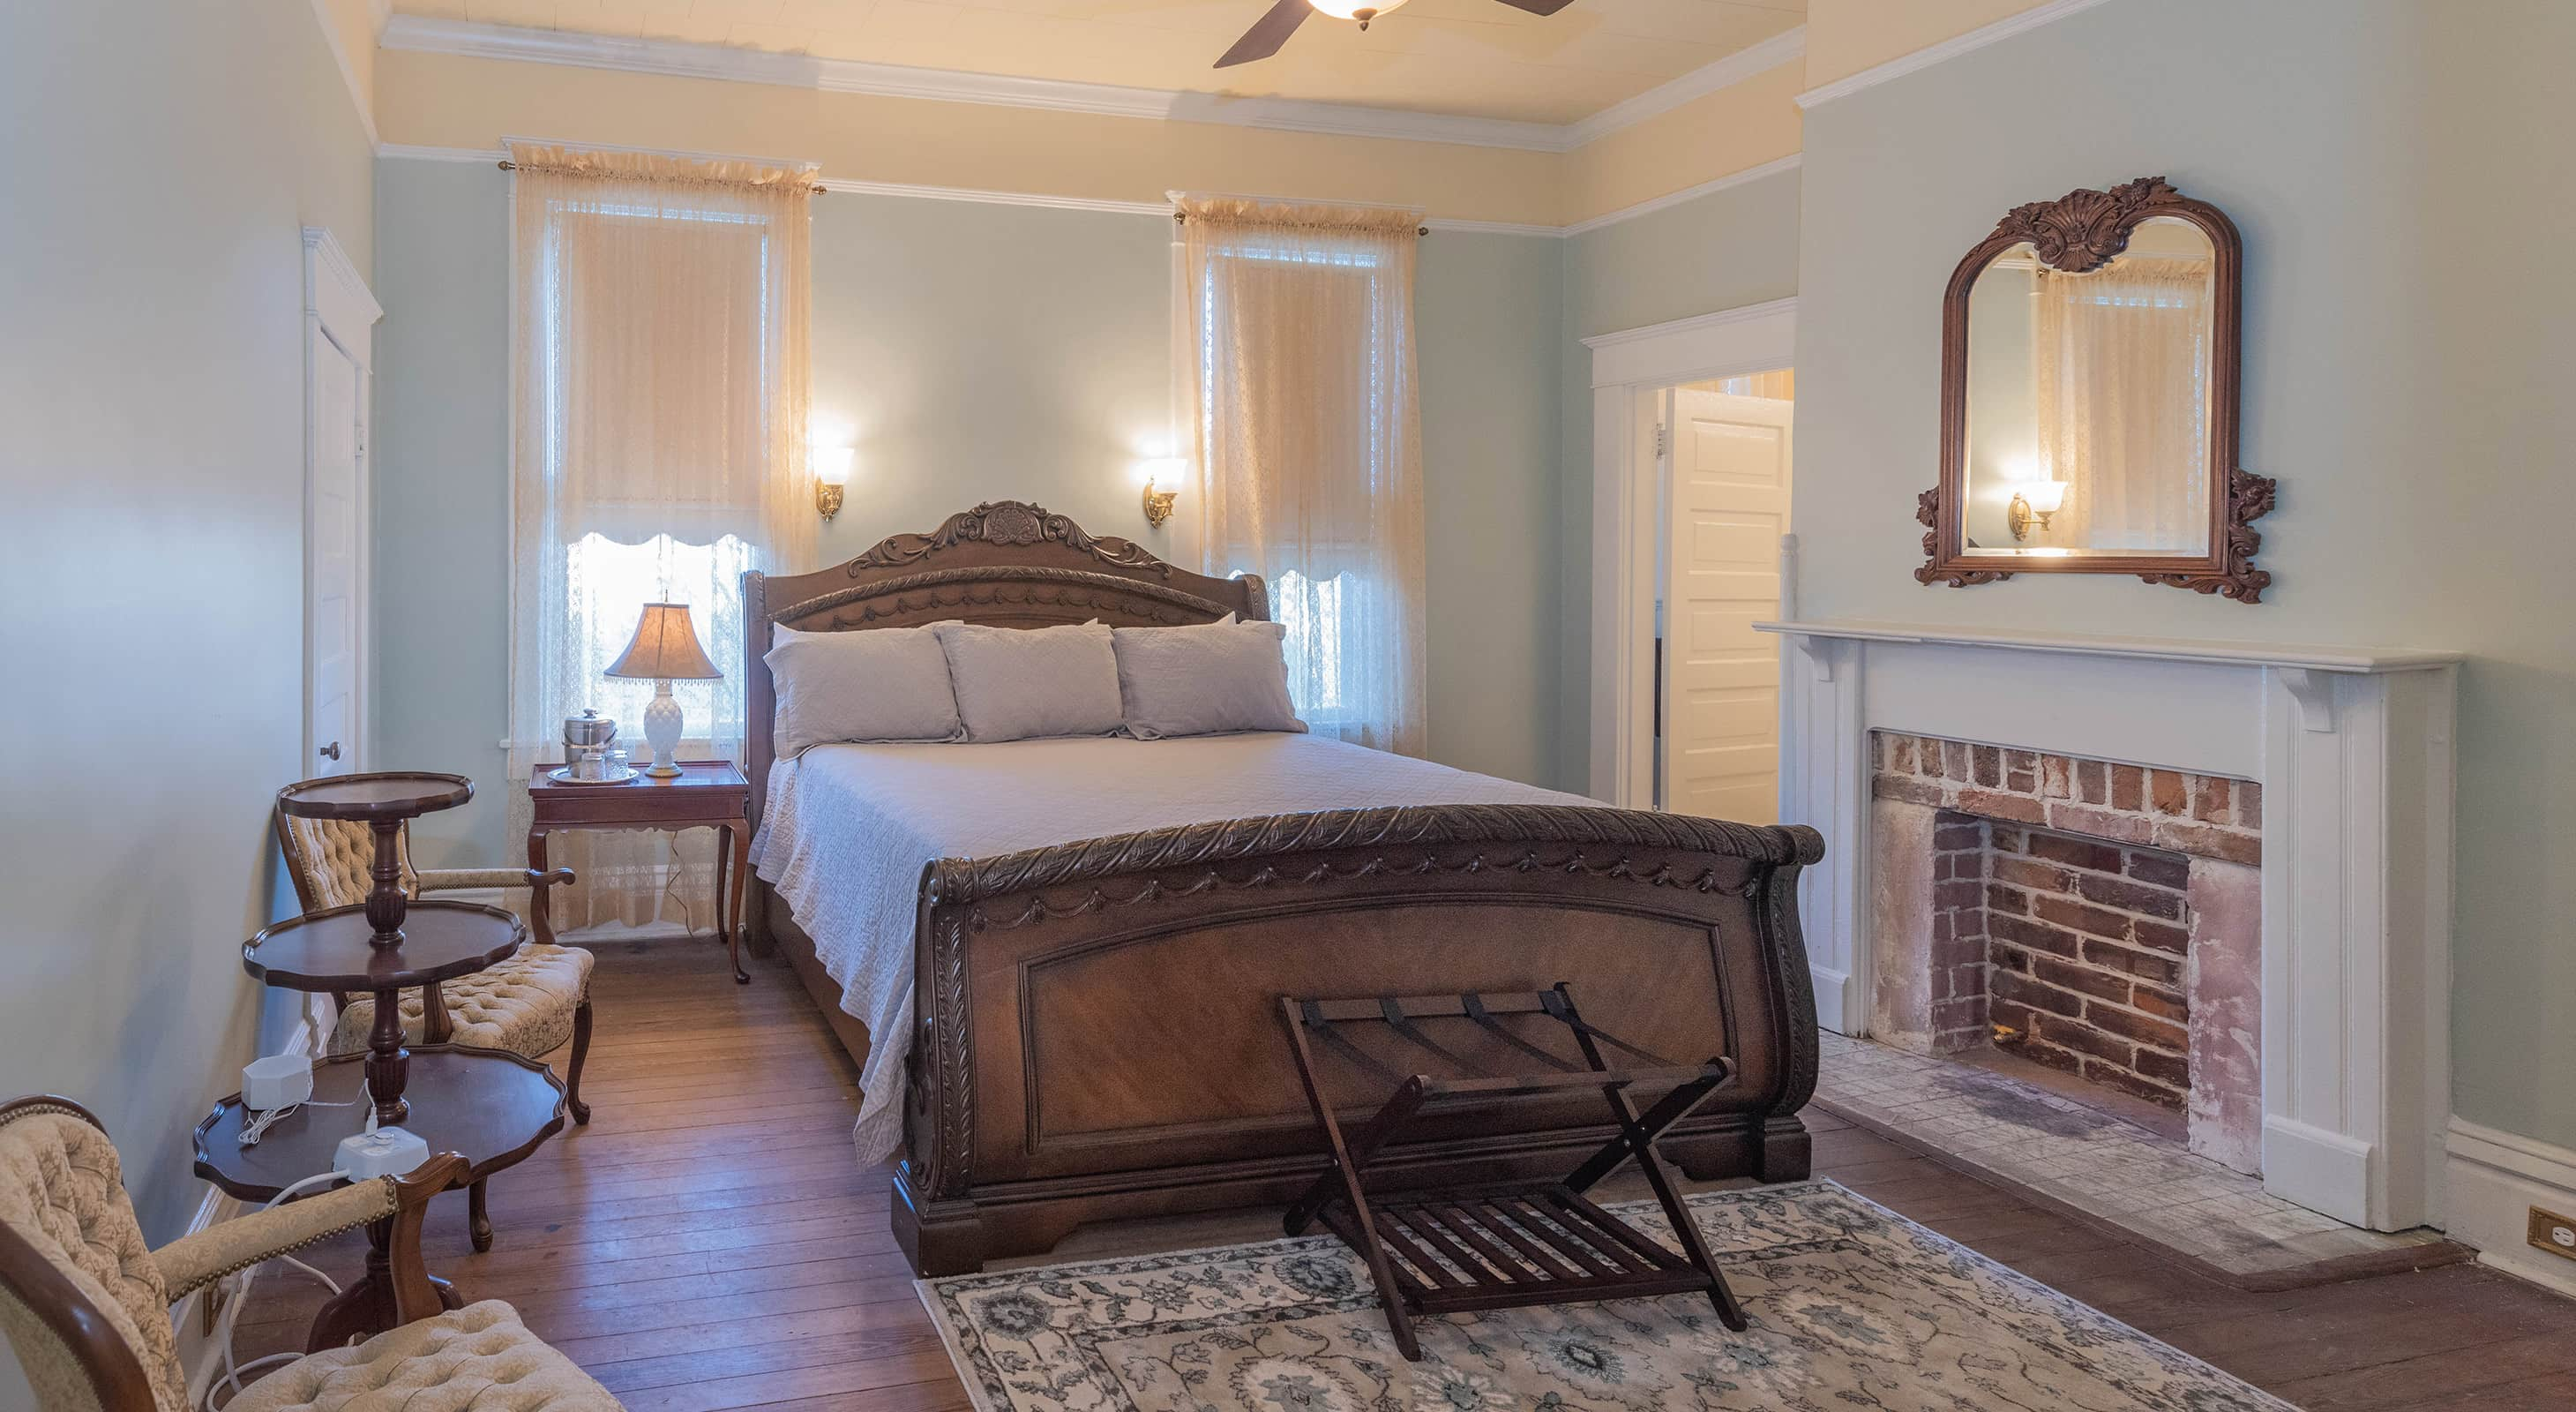 Robert Suite at our romantic Mississippi bed and breakfast